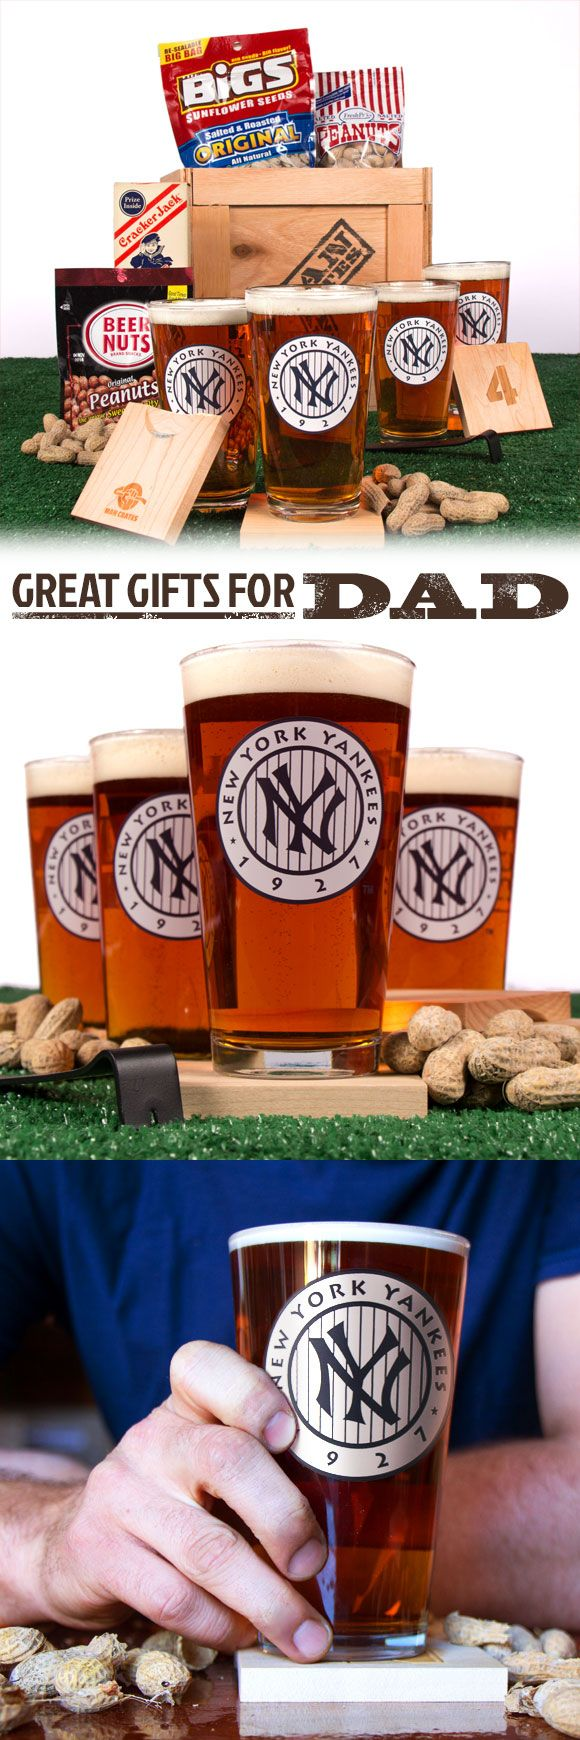 Is your Dad a true student of the game? The Legends of Baseball Crate is the perfect Father's Day gift for any baseball fan that's followed the greats since their first trip to the plate. There's no better way to pass down classic baseball stories than by passing around a few frothy beverages in these throwback brewholders celebrating the most historic teams from every era.